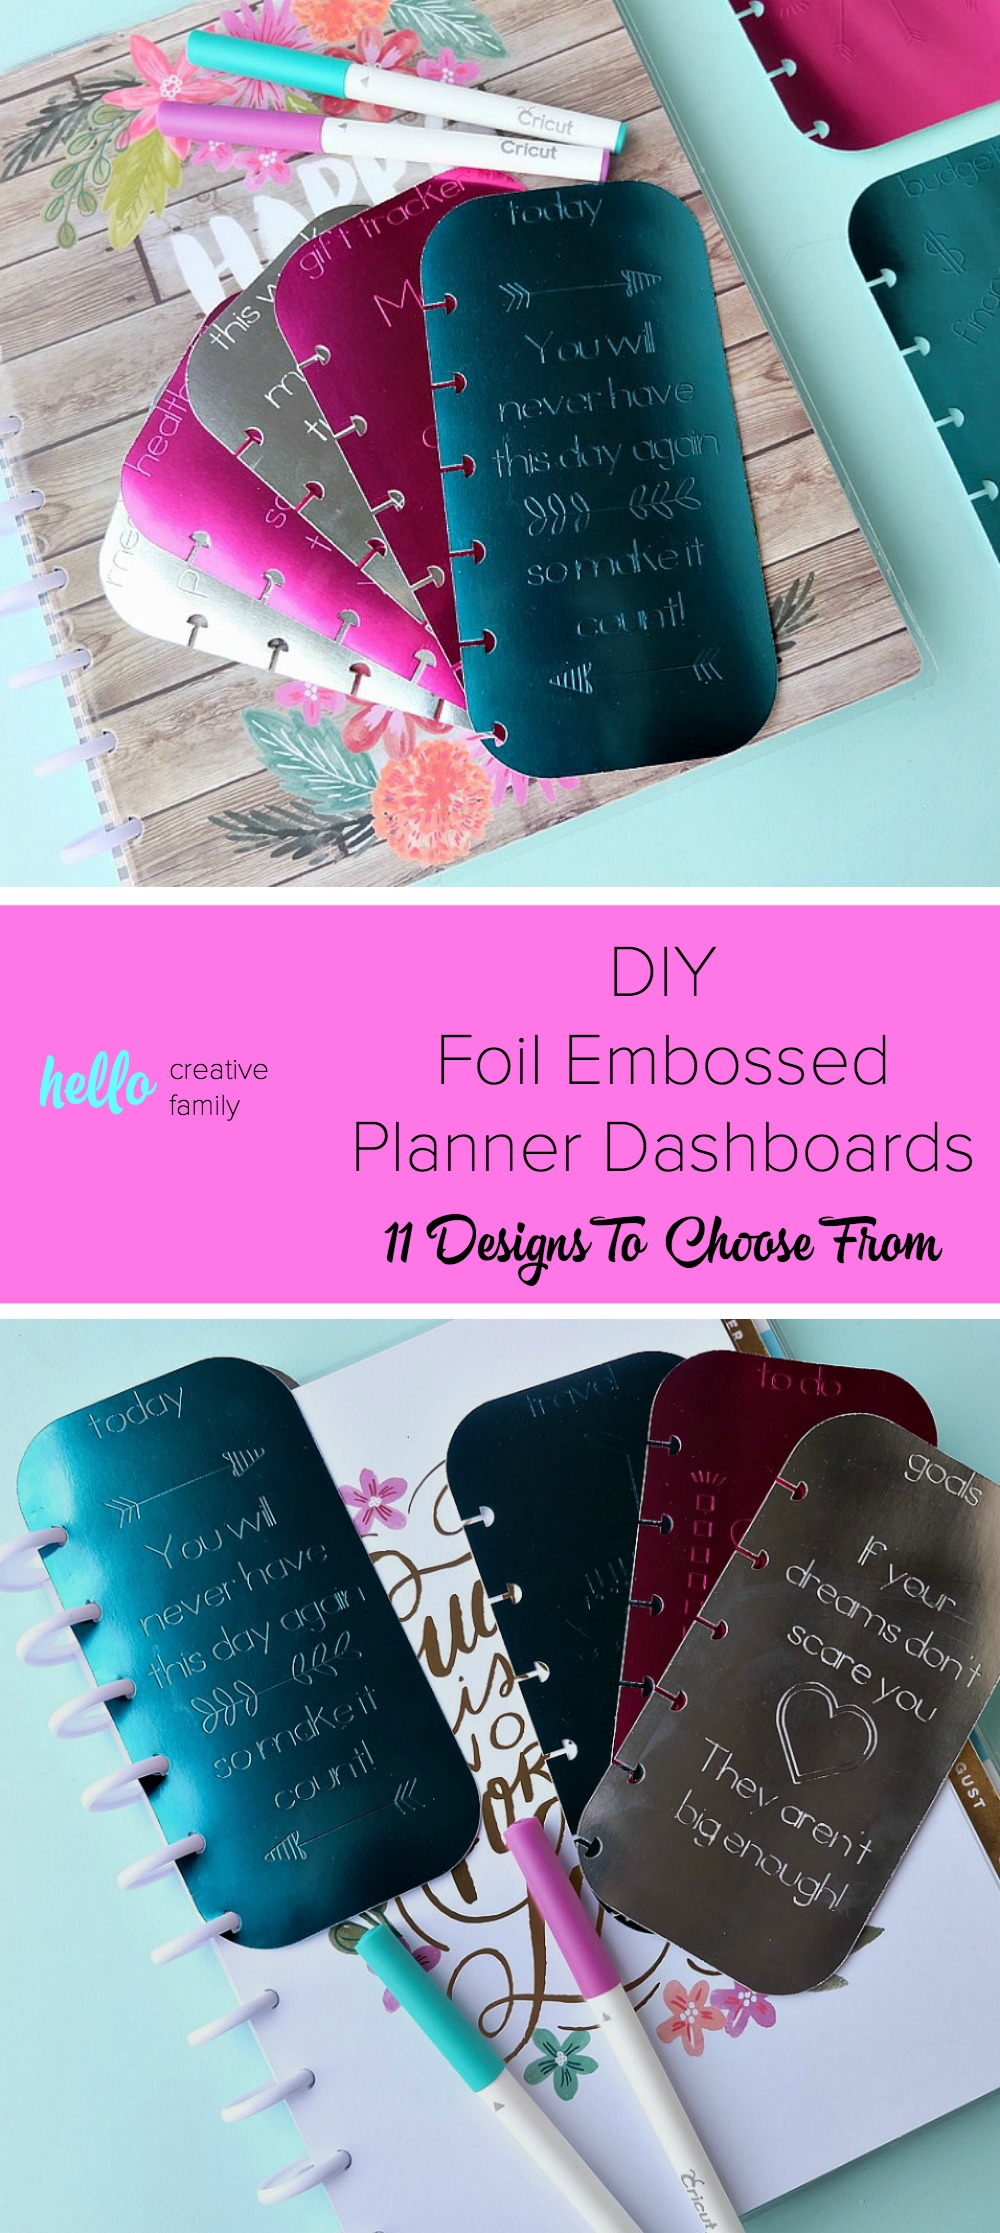 Making DIY Planner accessories is so much fun! Learn how to make foil embossed DIY planner dashboards using your Cricut Explore or Cricut Maker and a scoring stylus! This project includes 11 different design options for your tabs. So easy to make. This project will kick your planner up a notch or two! #CricutMade #CricutHoliday #HappyPlanner #Planners #crafts #DIY